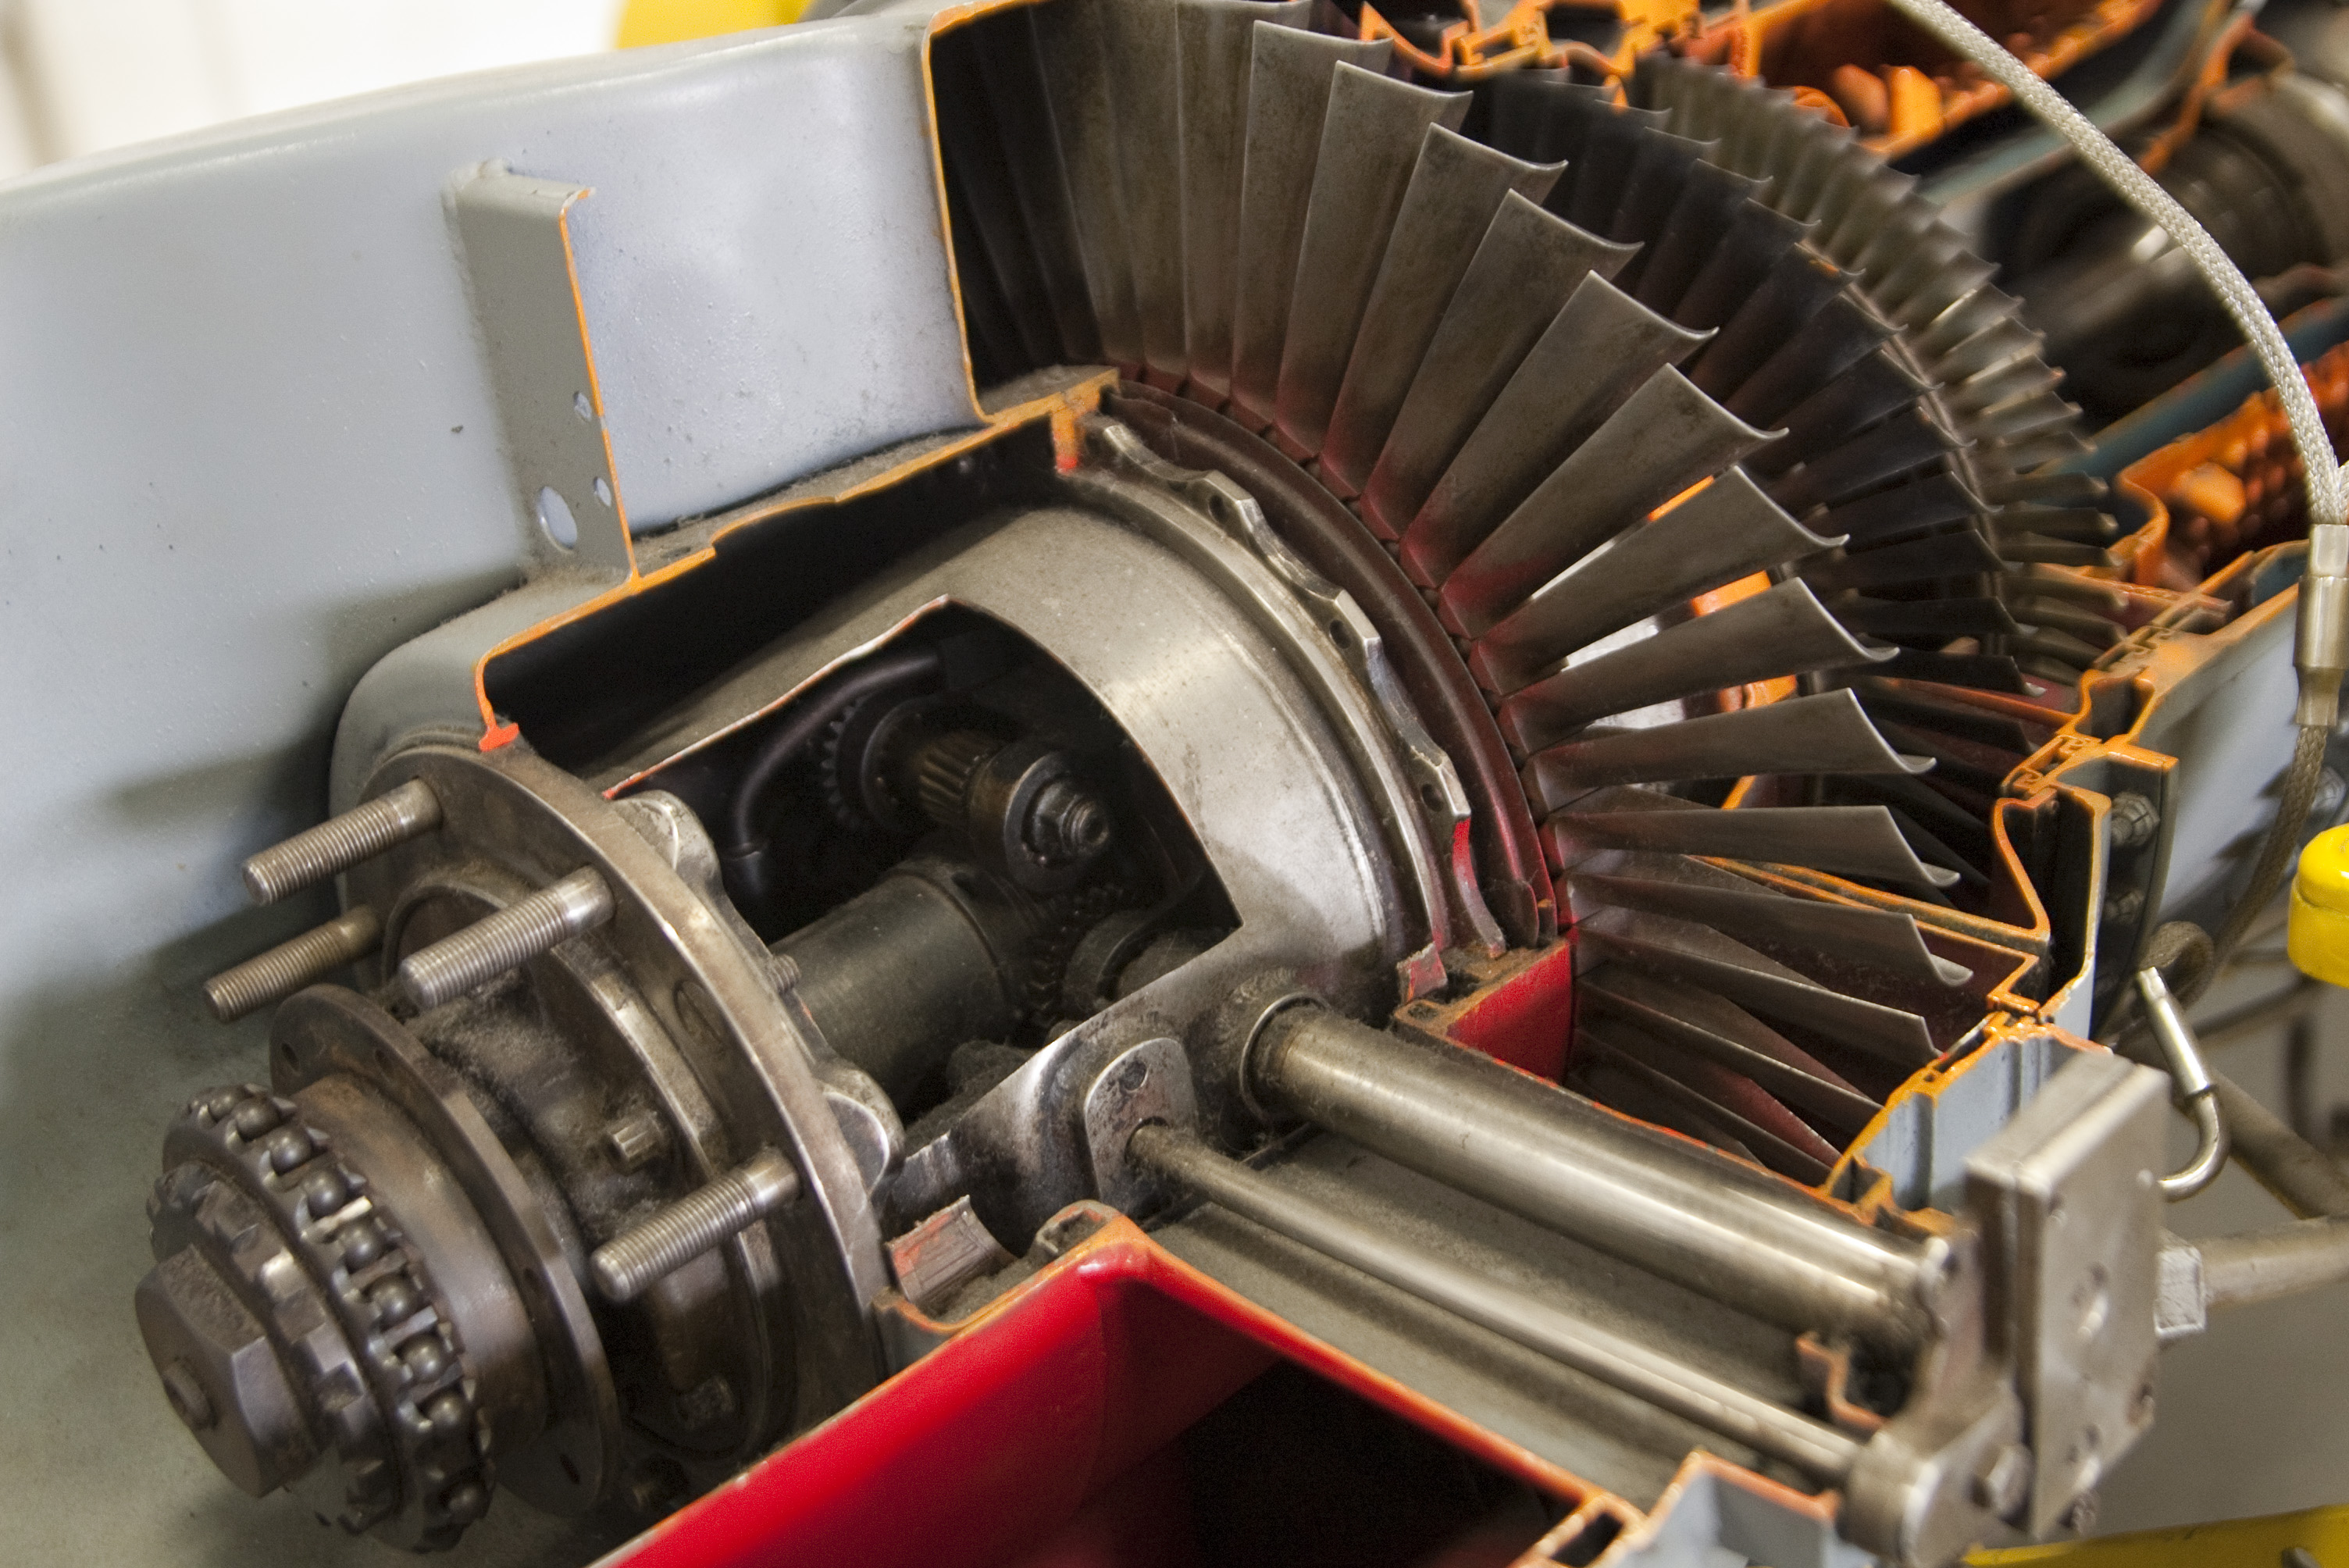 Free Stock 2335 cutaway jet engine